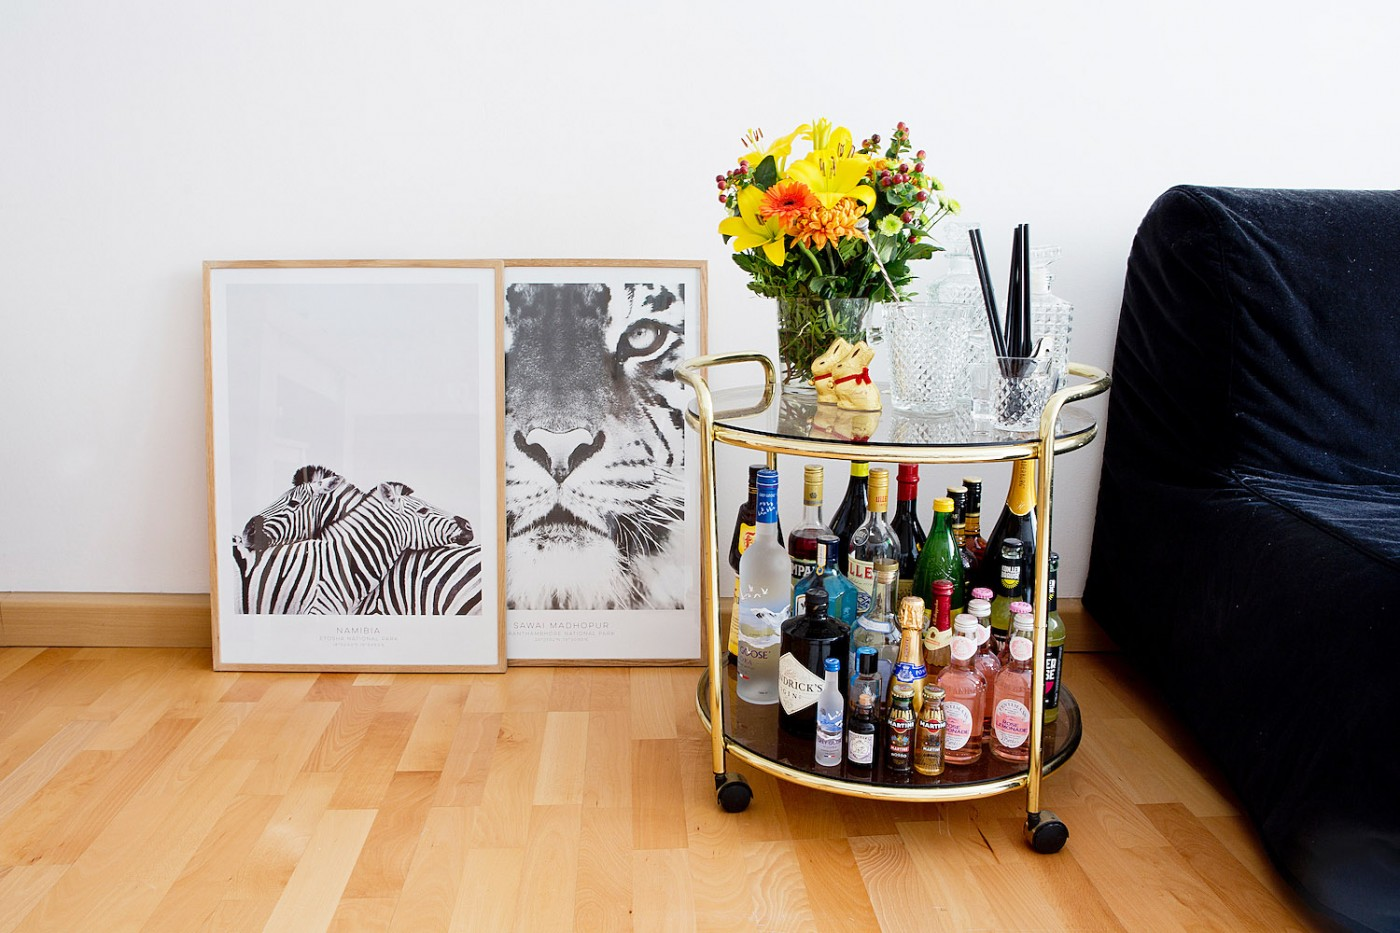 English) News from the living room safari poster, bar cart & Kartell ...